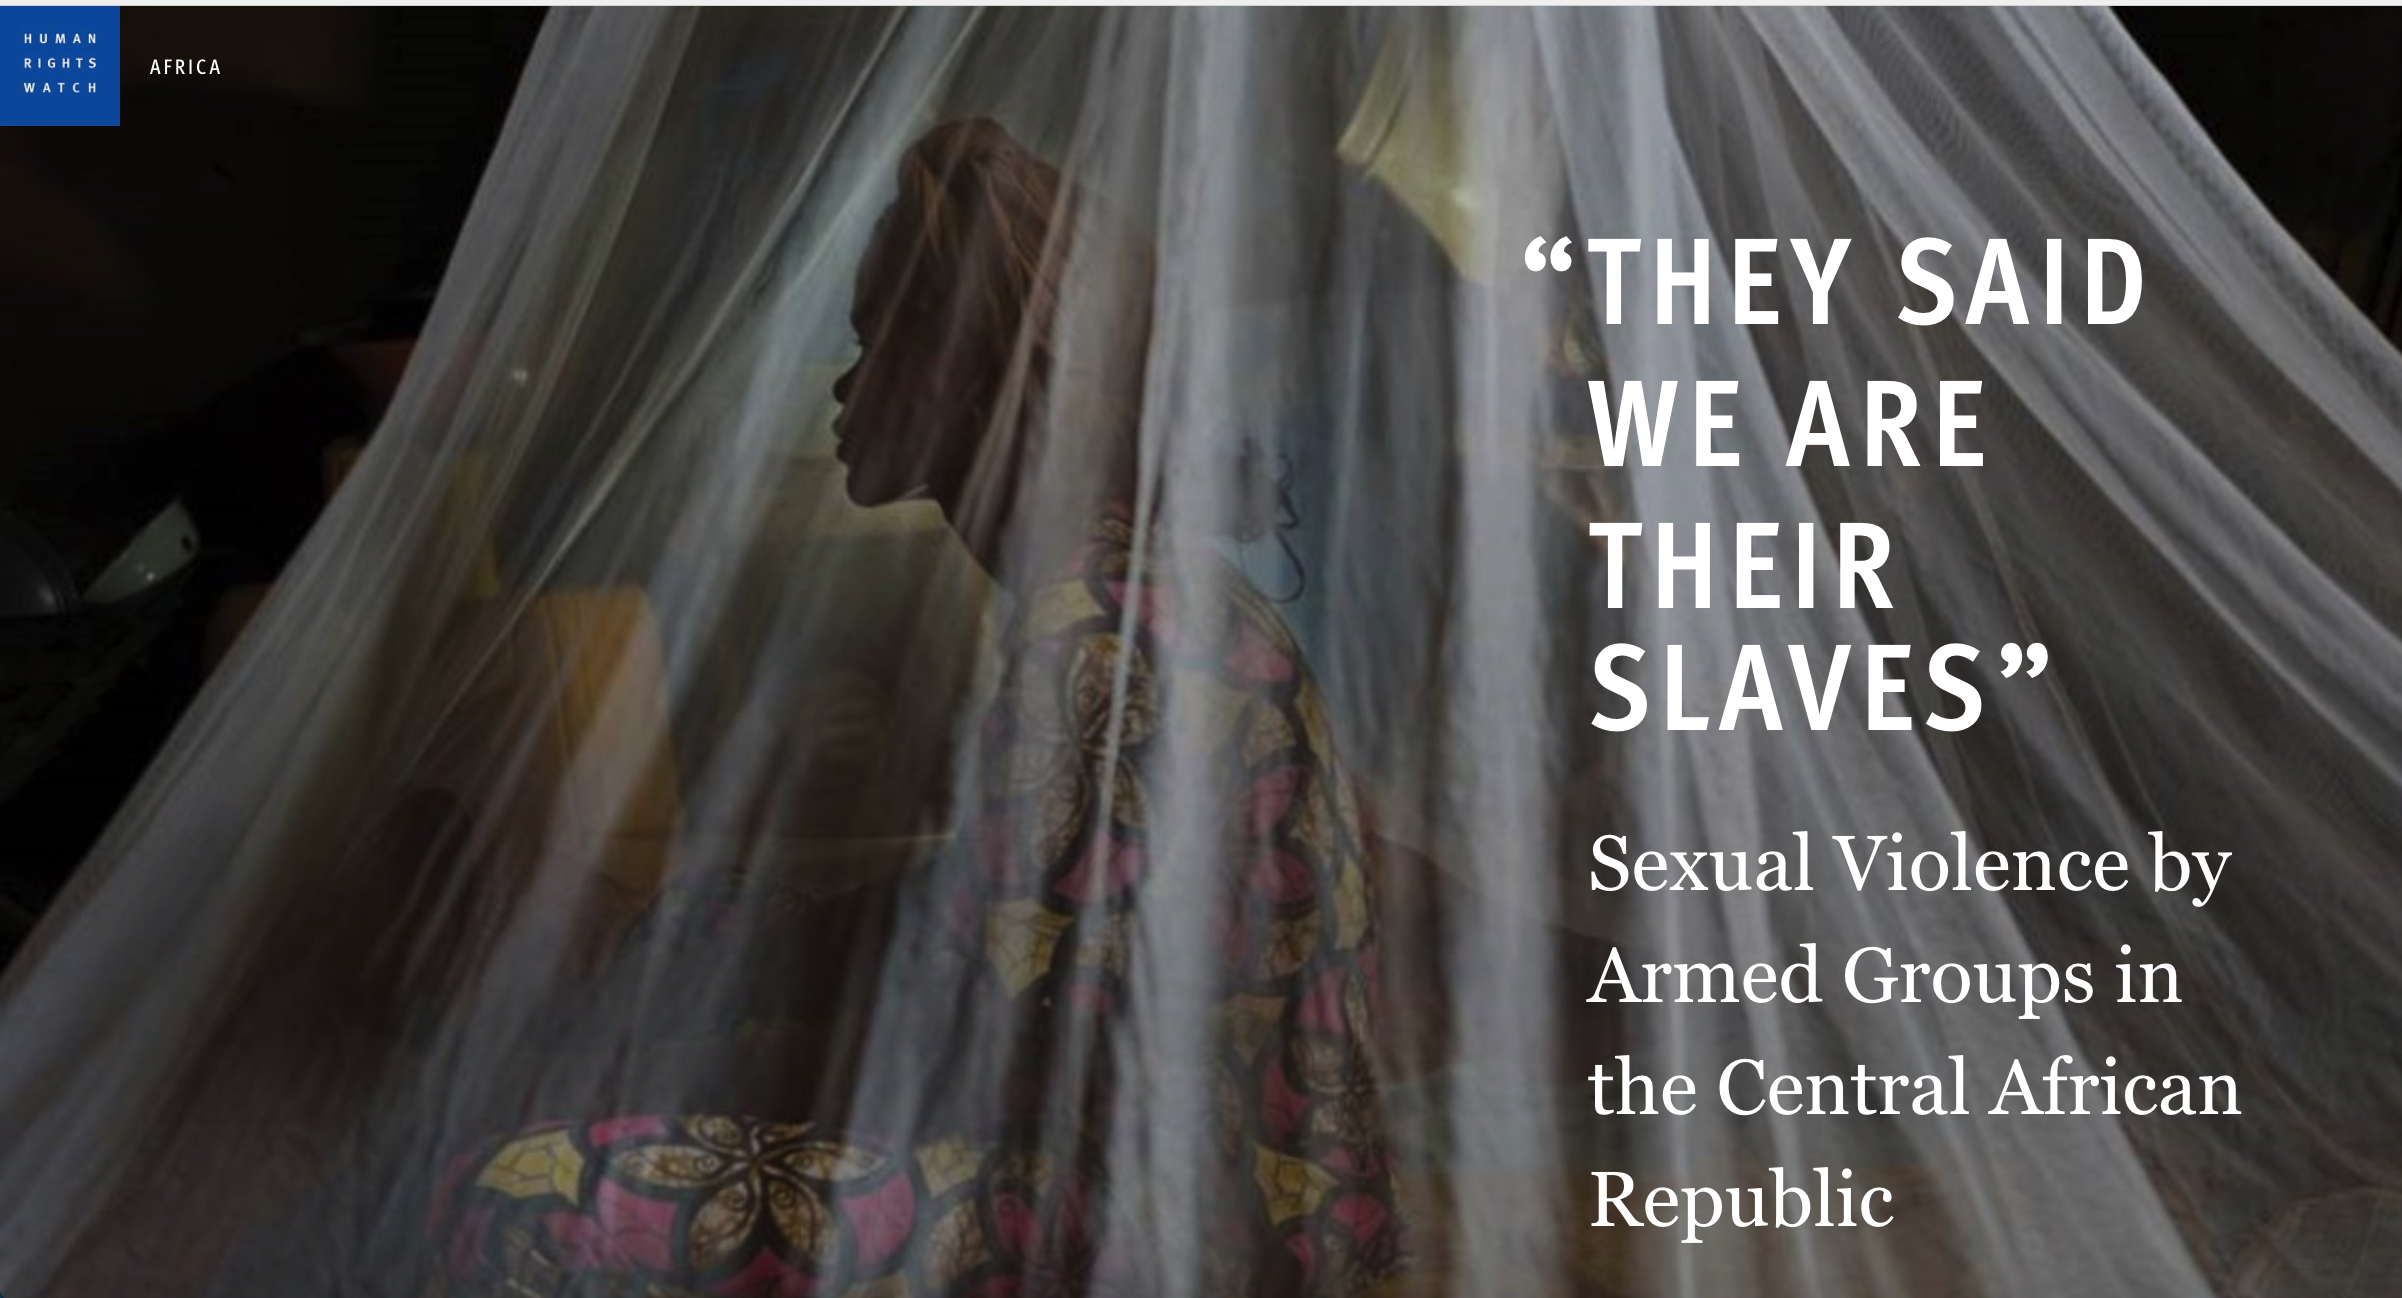 https://www.hrw.org/video-photos/interactive/2017/10/05/they-said-we-are-their-slaves